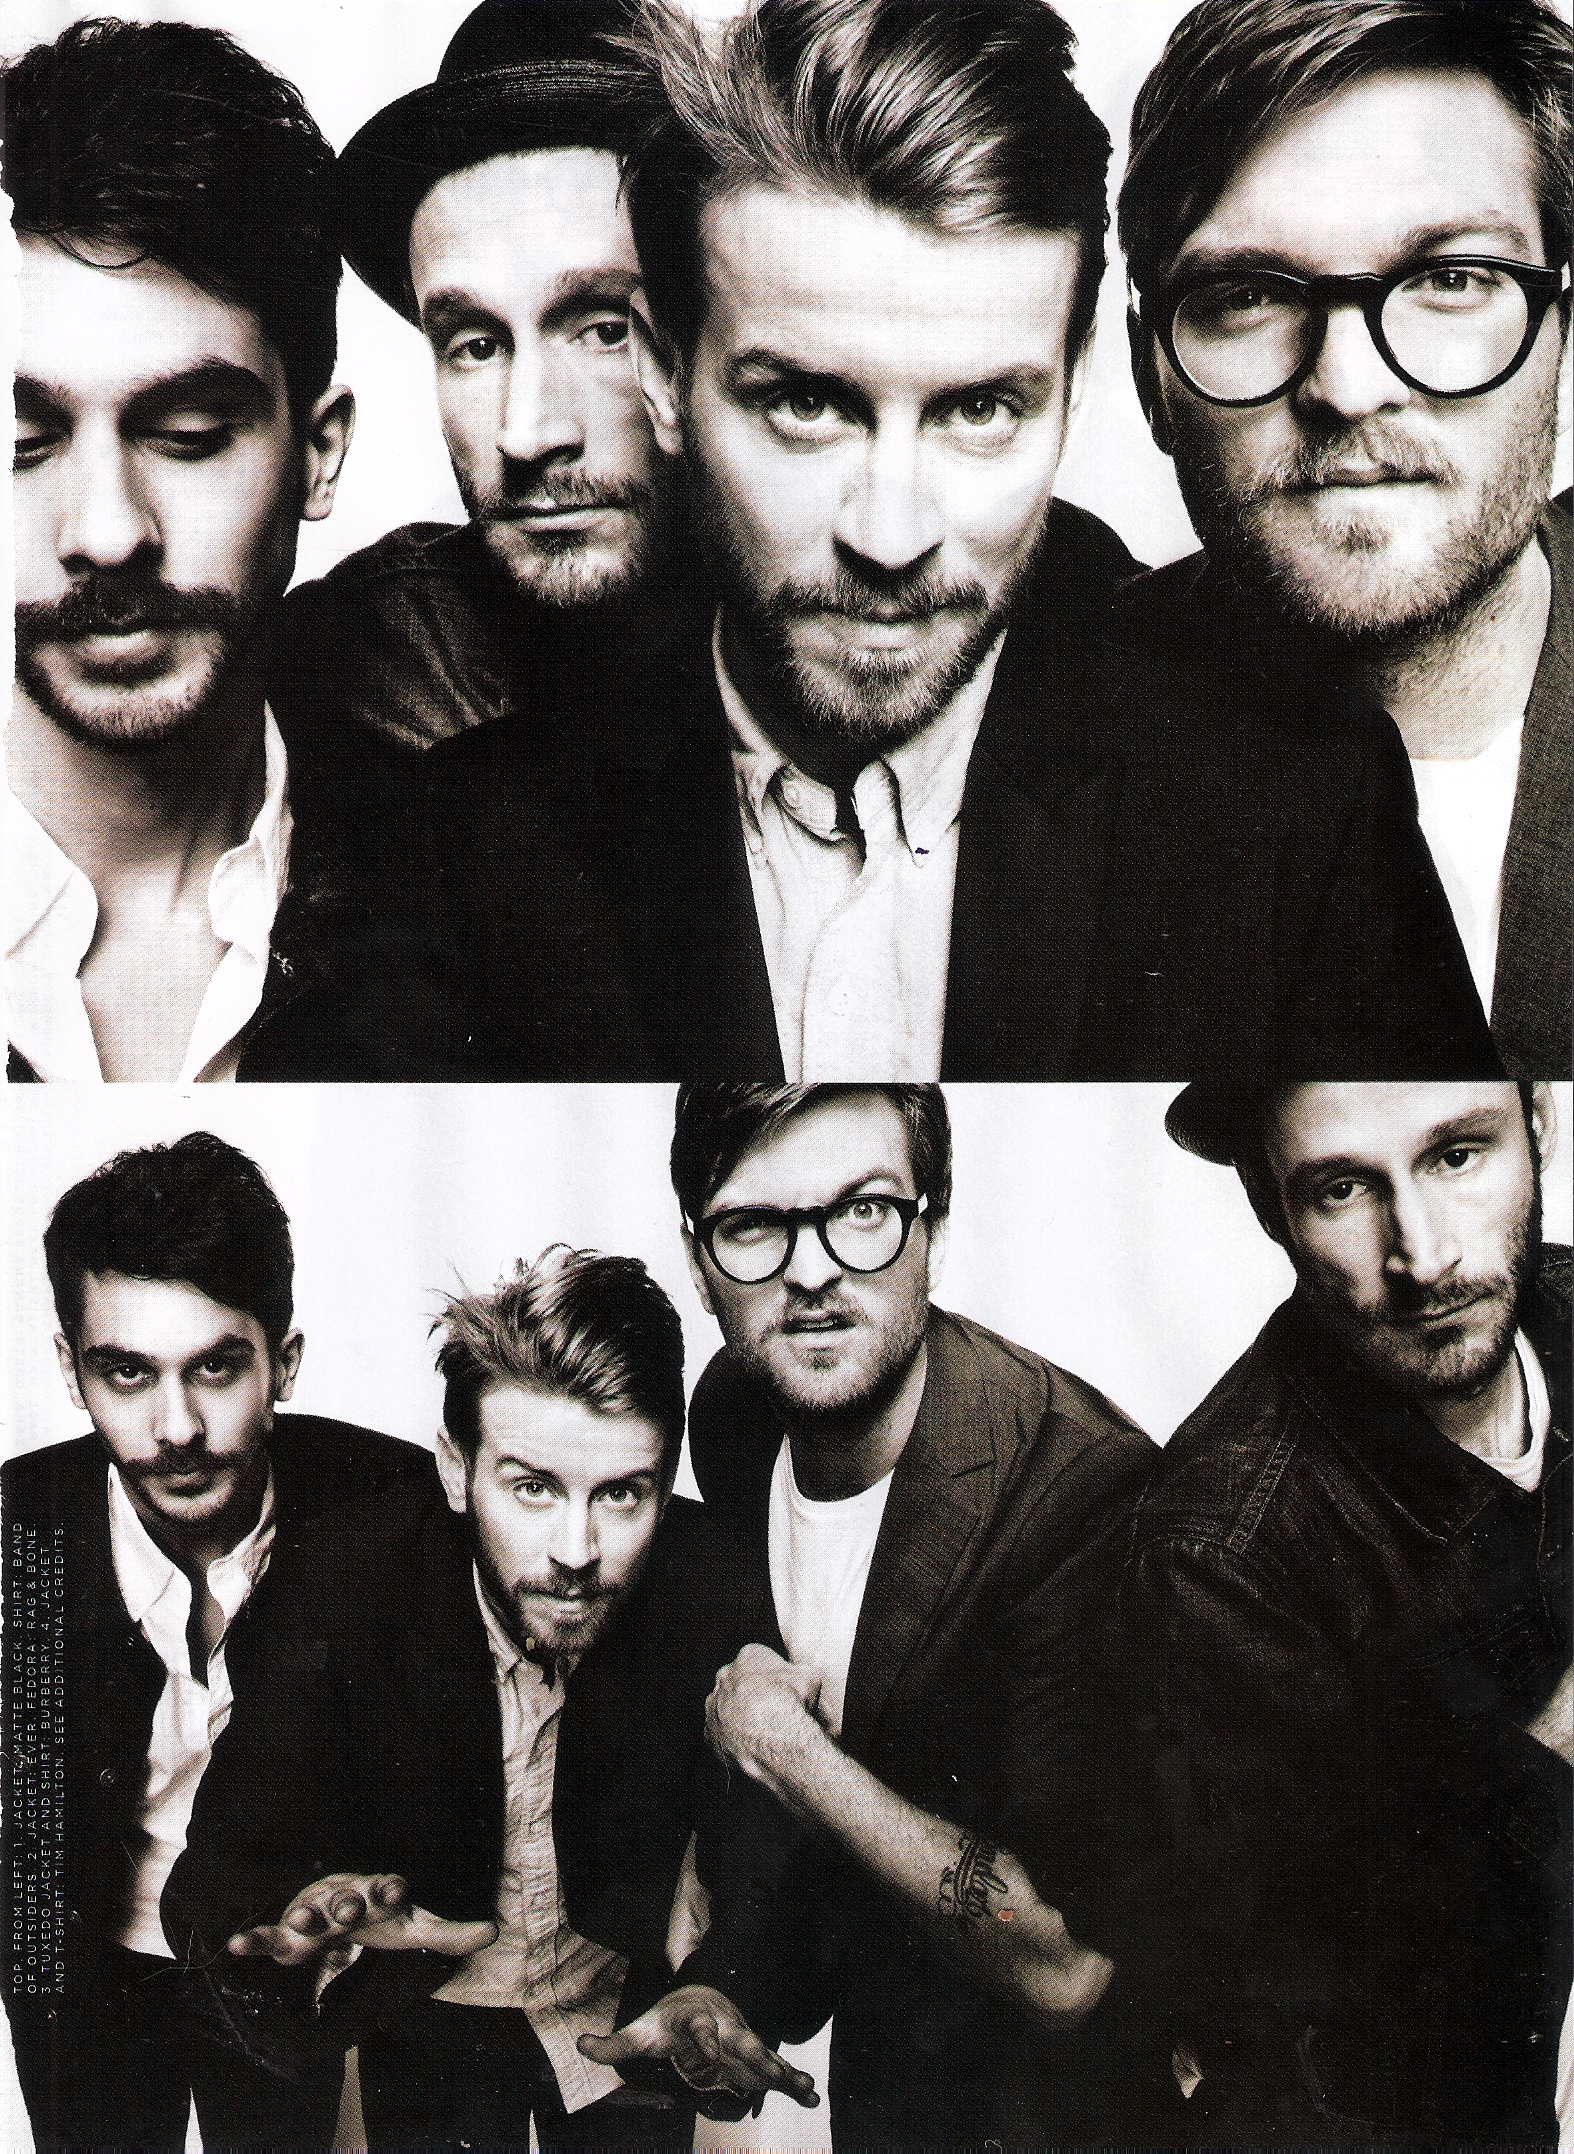 Cold_War_Kids__in_gq